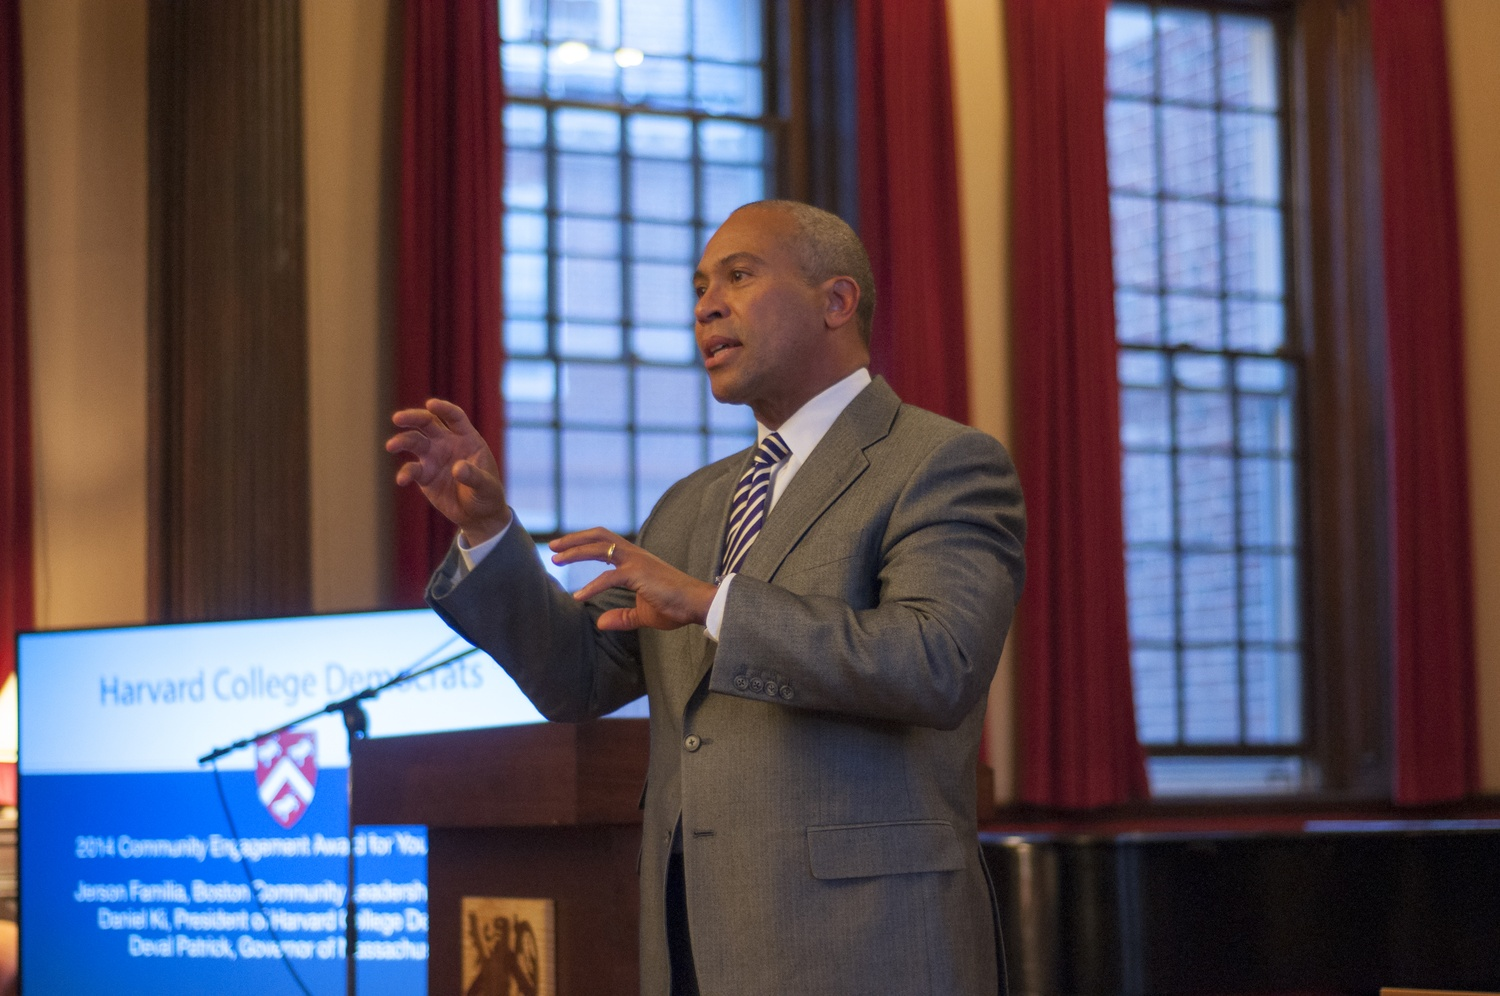 Former Massachusetts Governor Deval L. Patrick '78 will speak at Harvard's 364th Commencement.